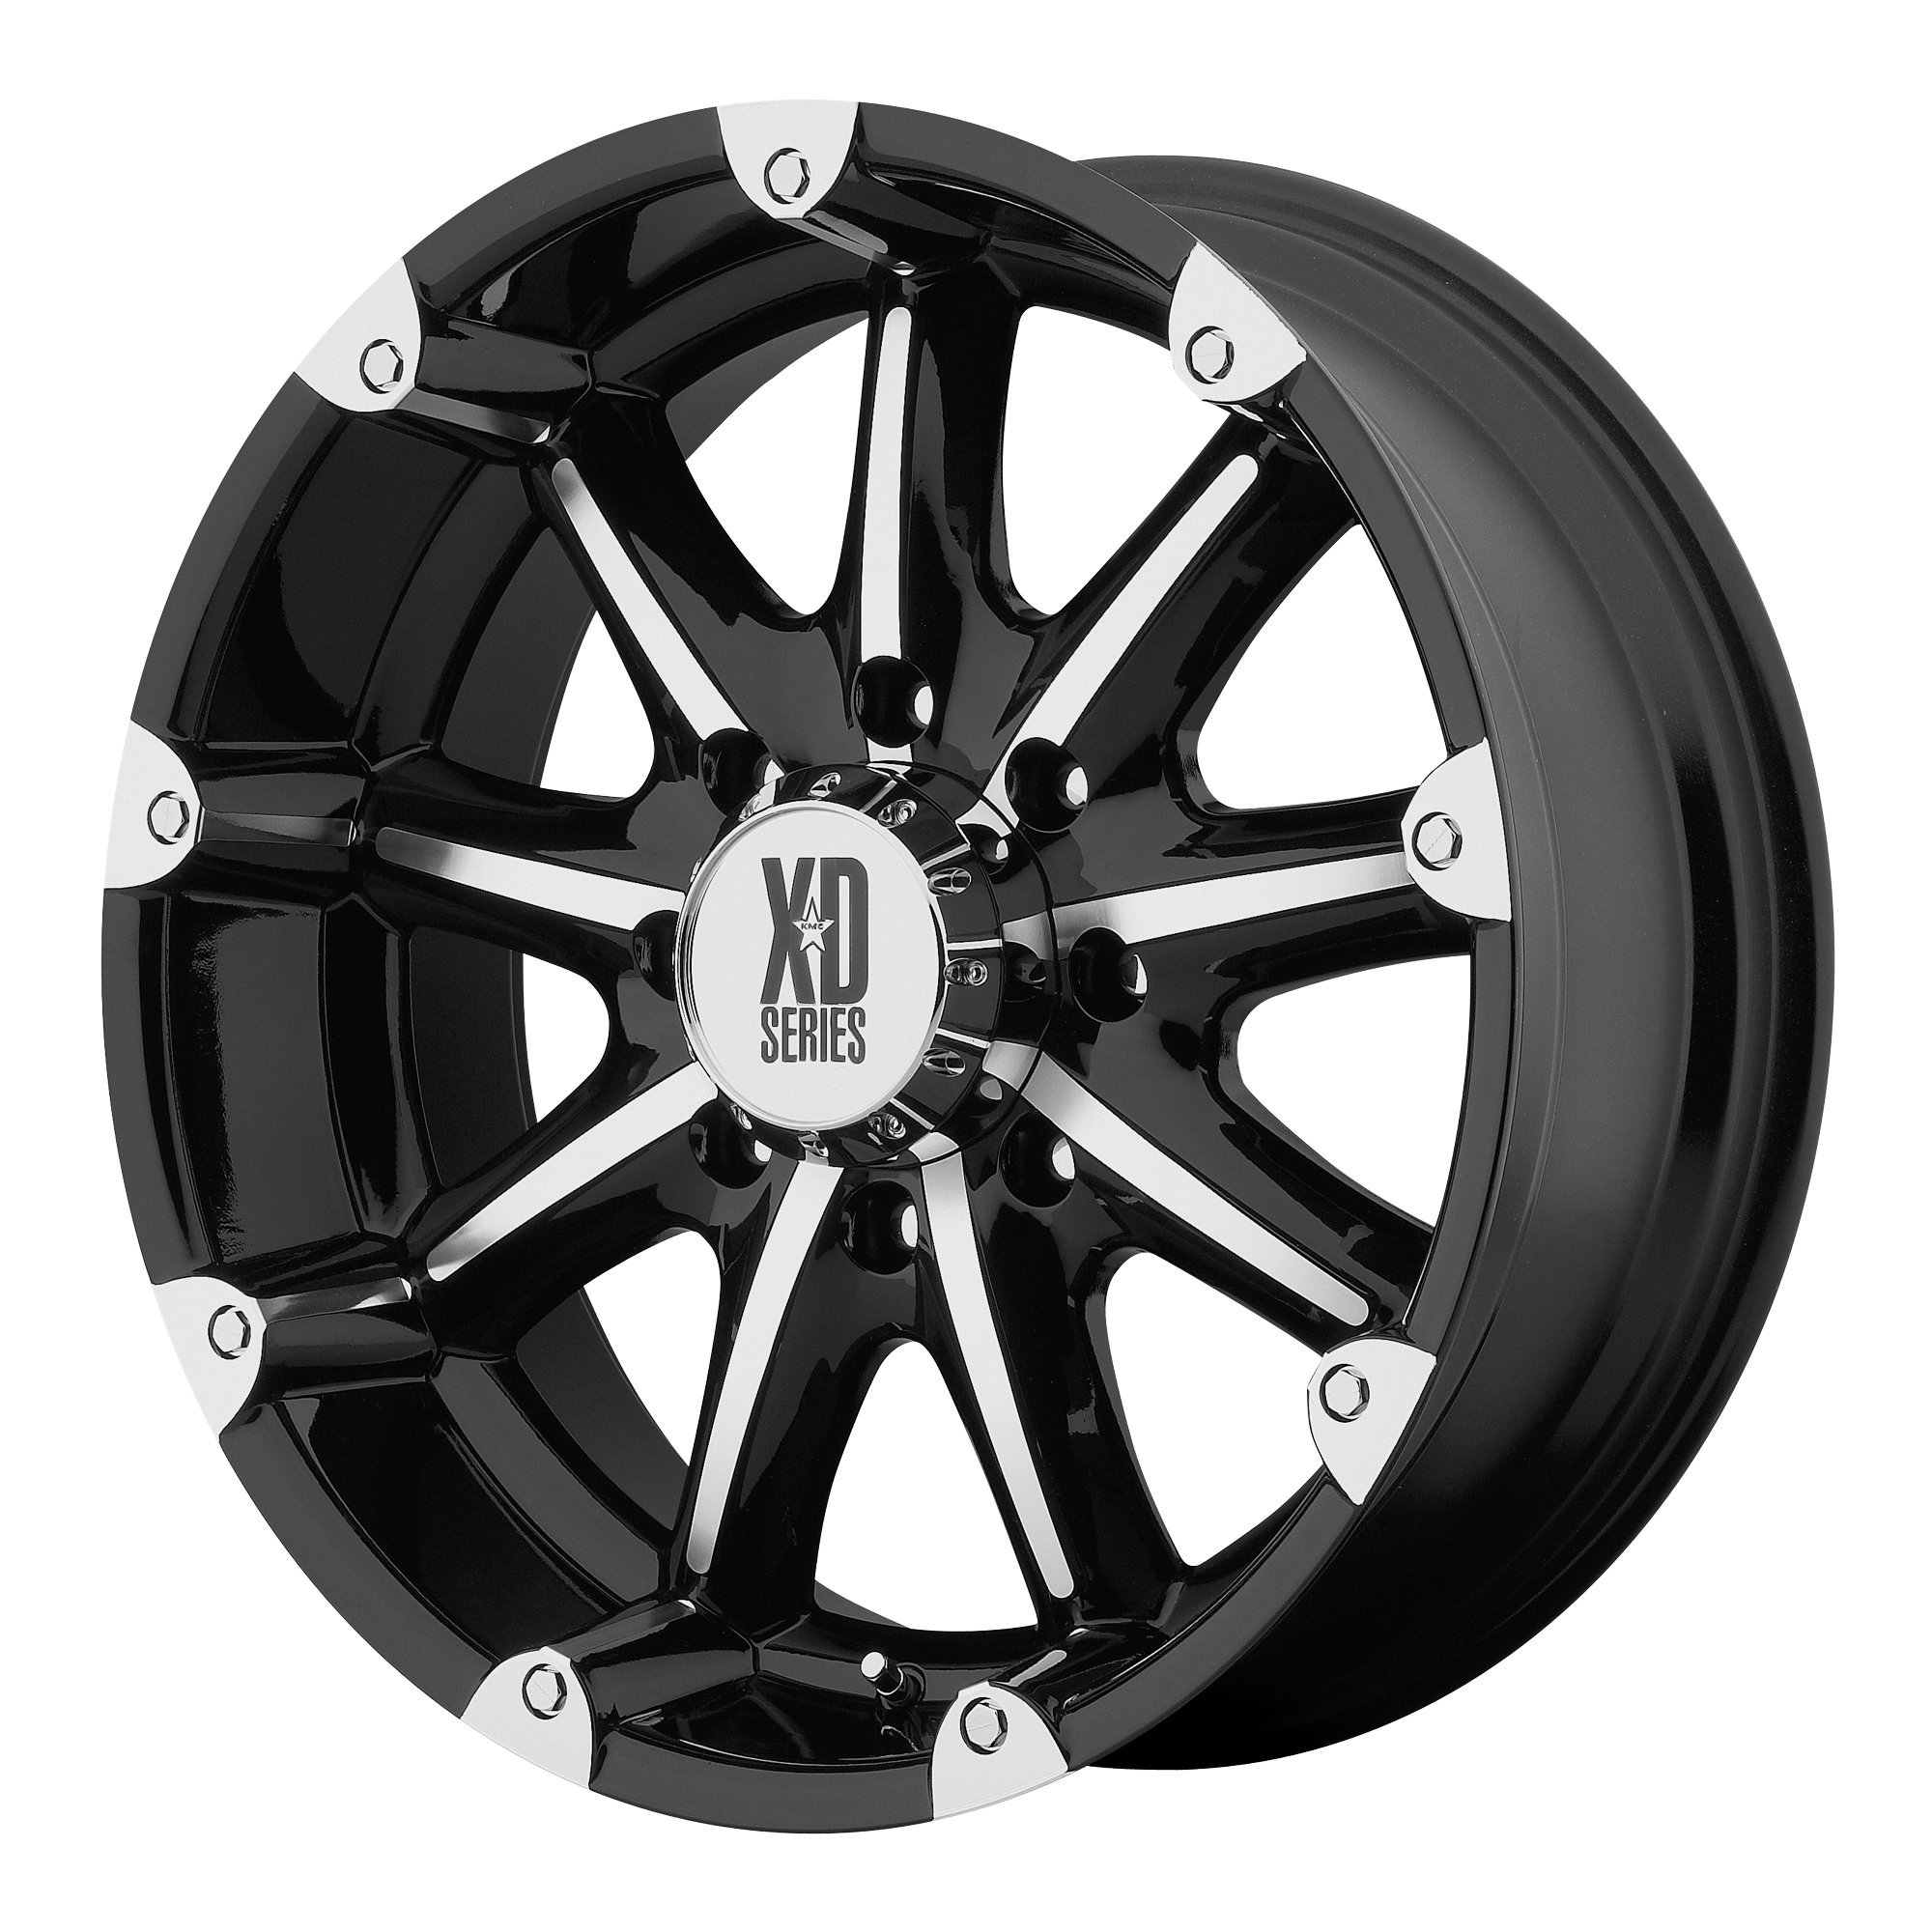 XD Series by KMC Wheels XD779 Badlands Gloss Black Wheel with Machined Accents (18x9''/8x165.1mm, +18mm offset)